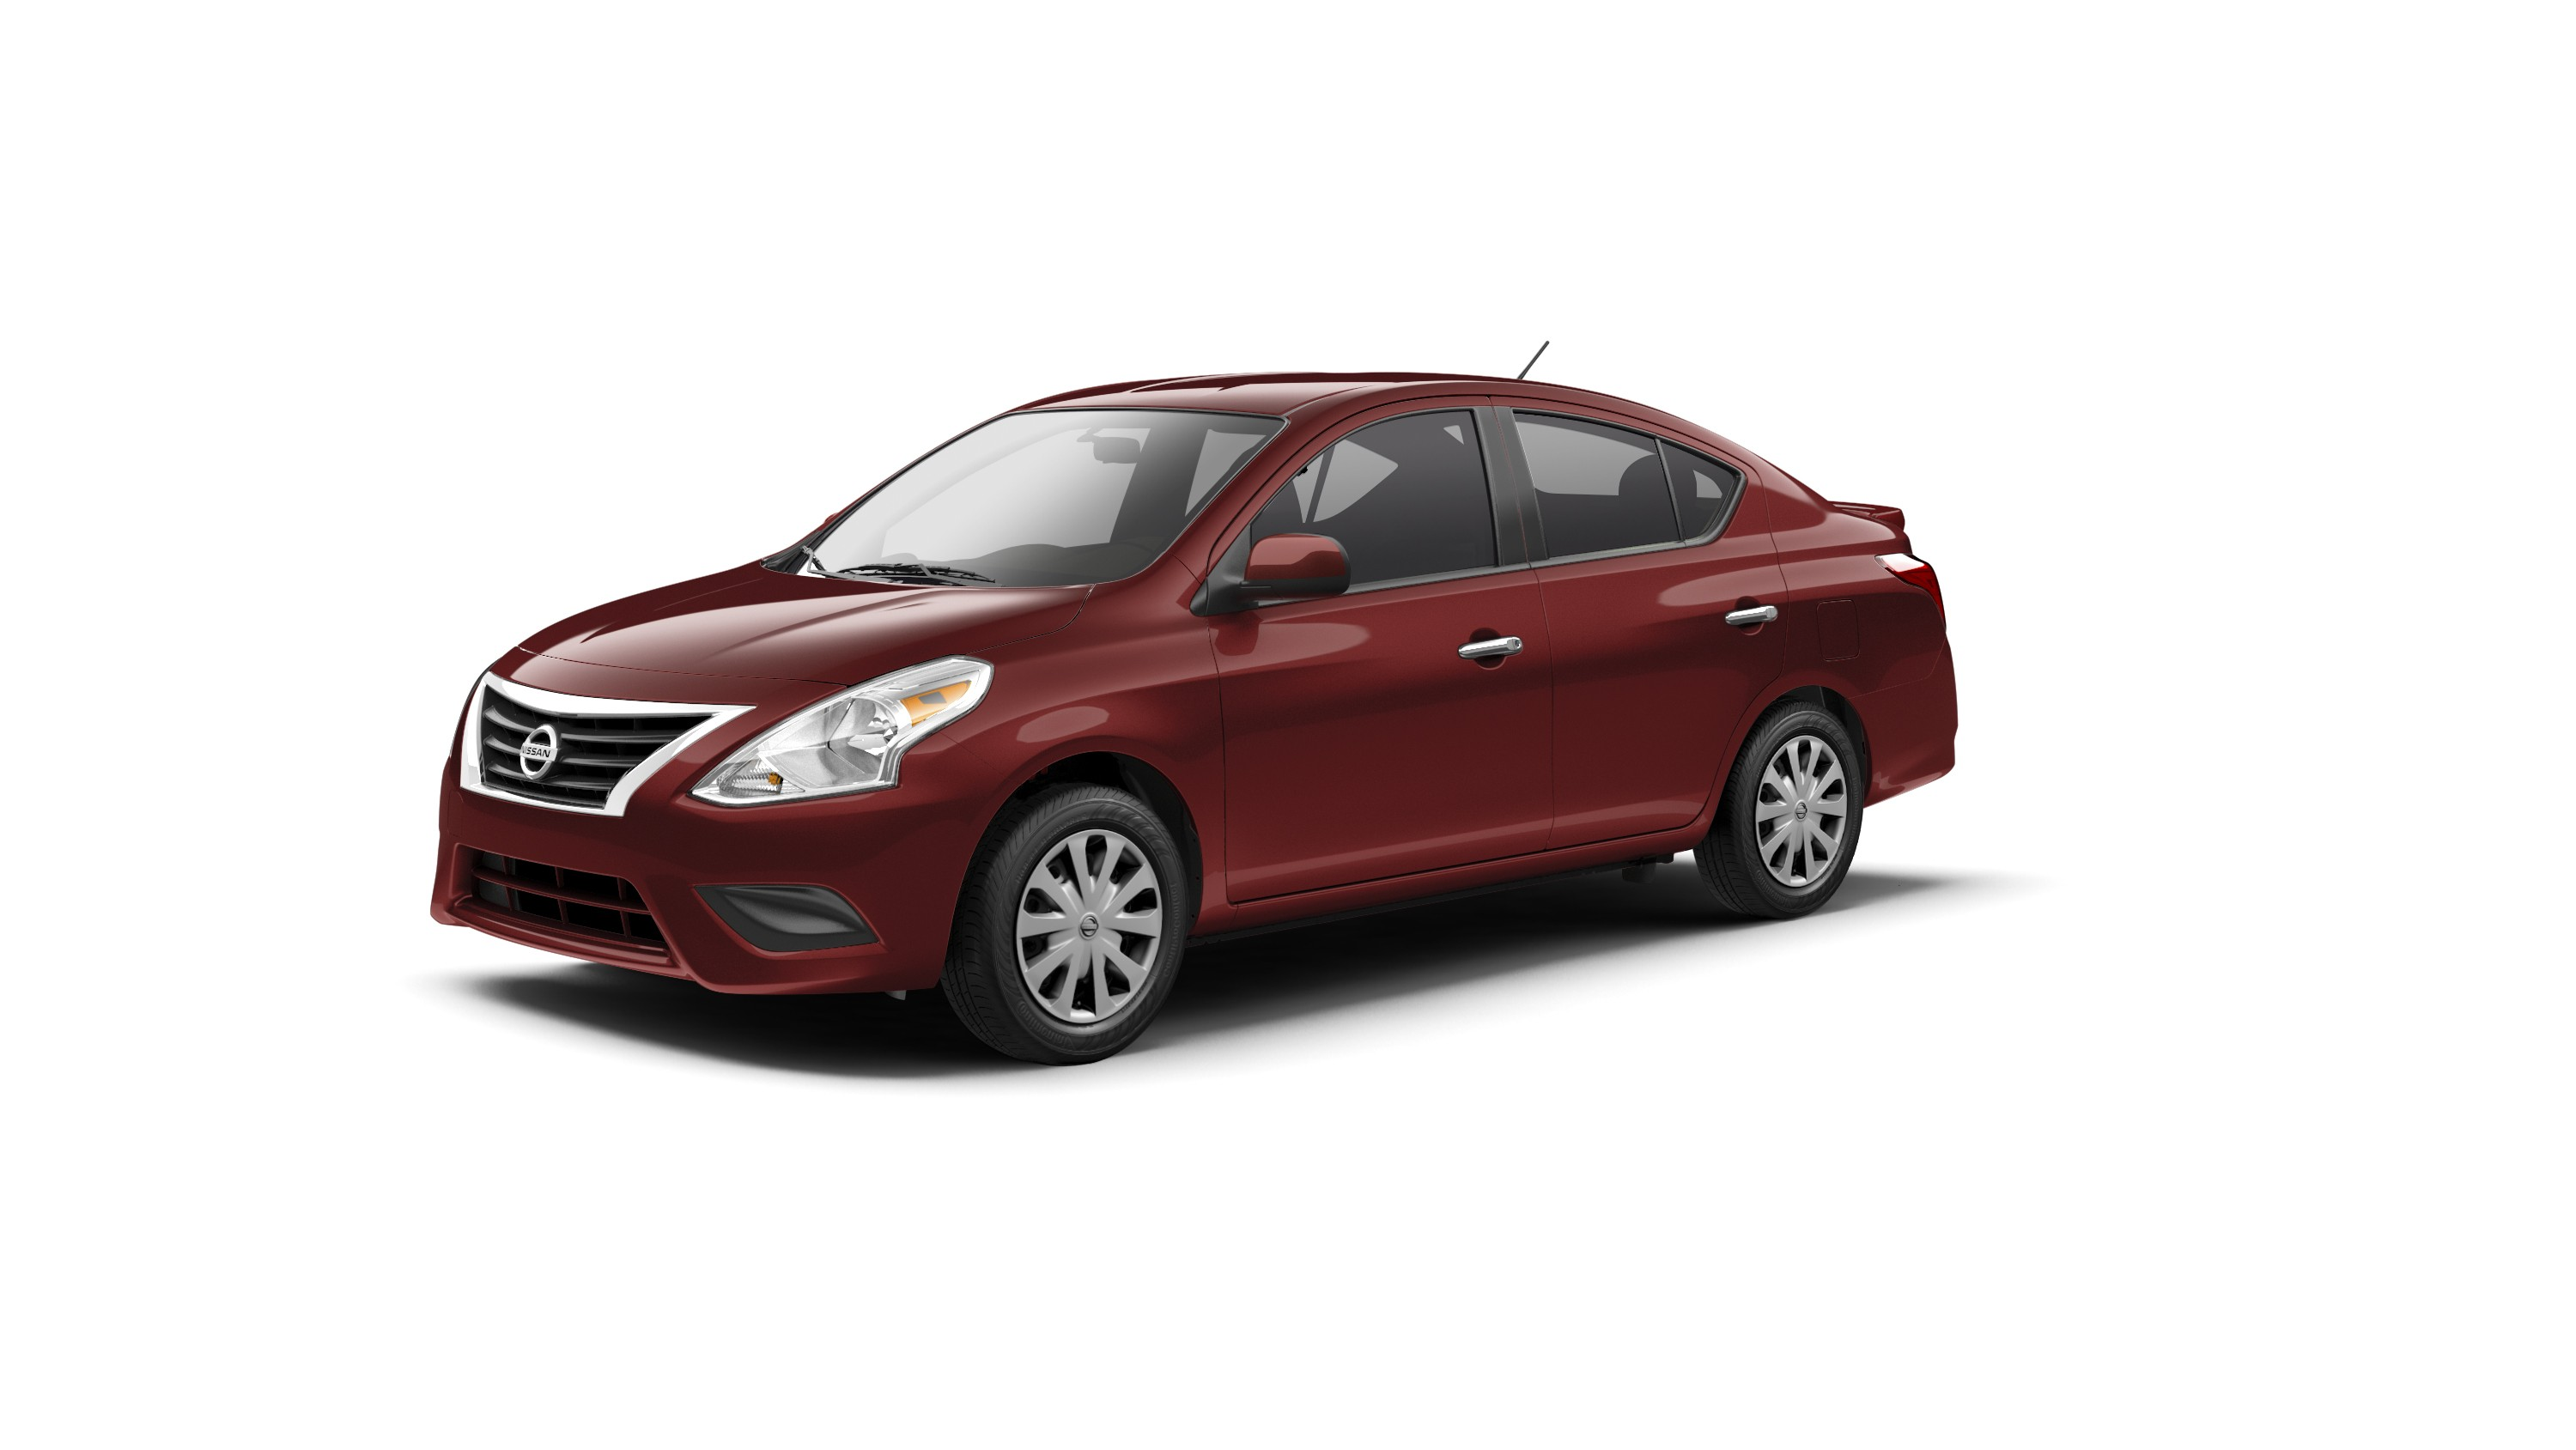 2017 nissan versa sedan detailed still the cheapest new car on sale in the u s autoevolution. Black Bedroom Furniture Sets. Home Design Ideas